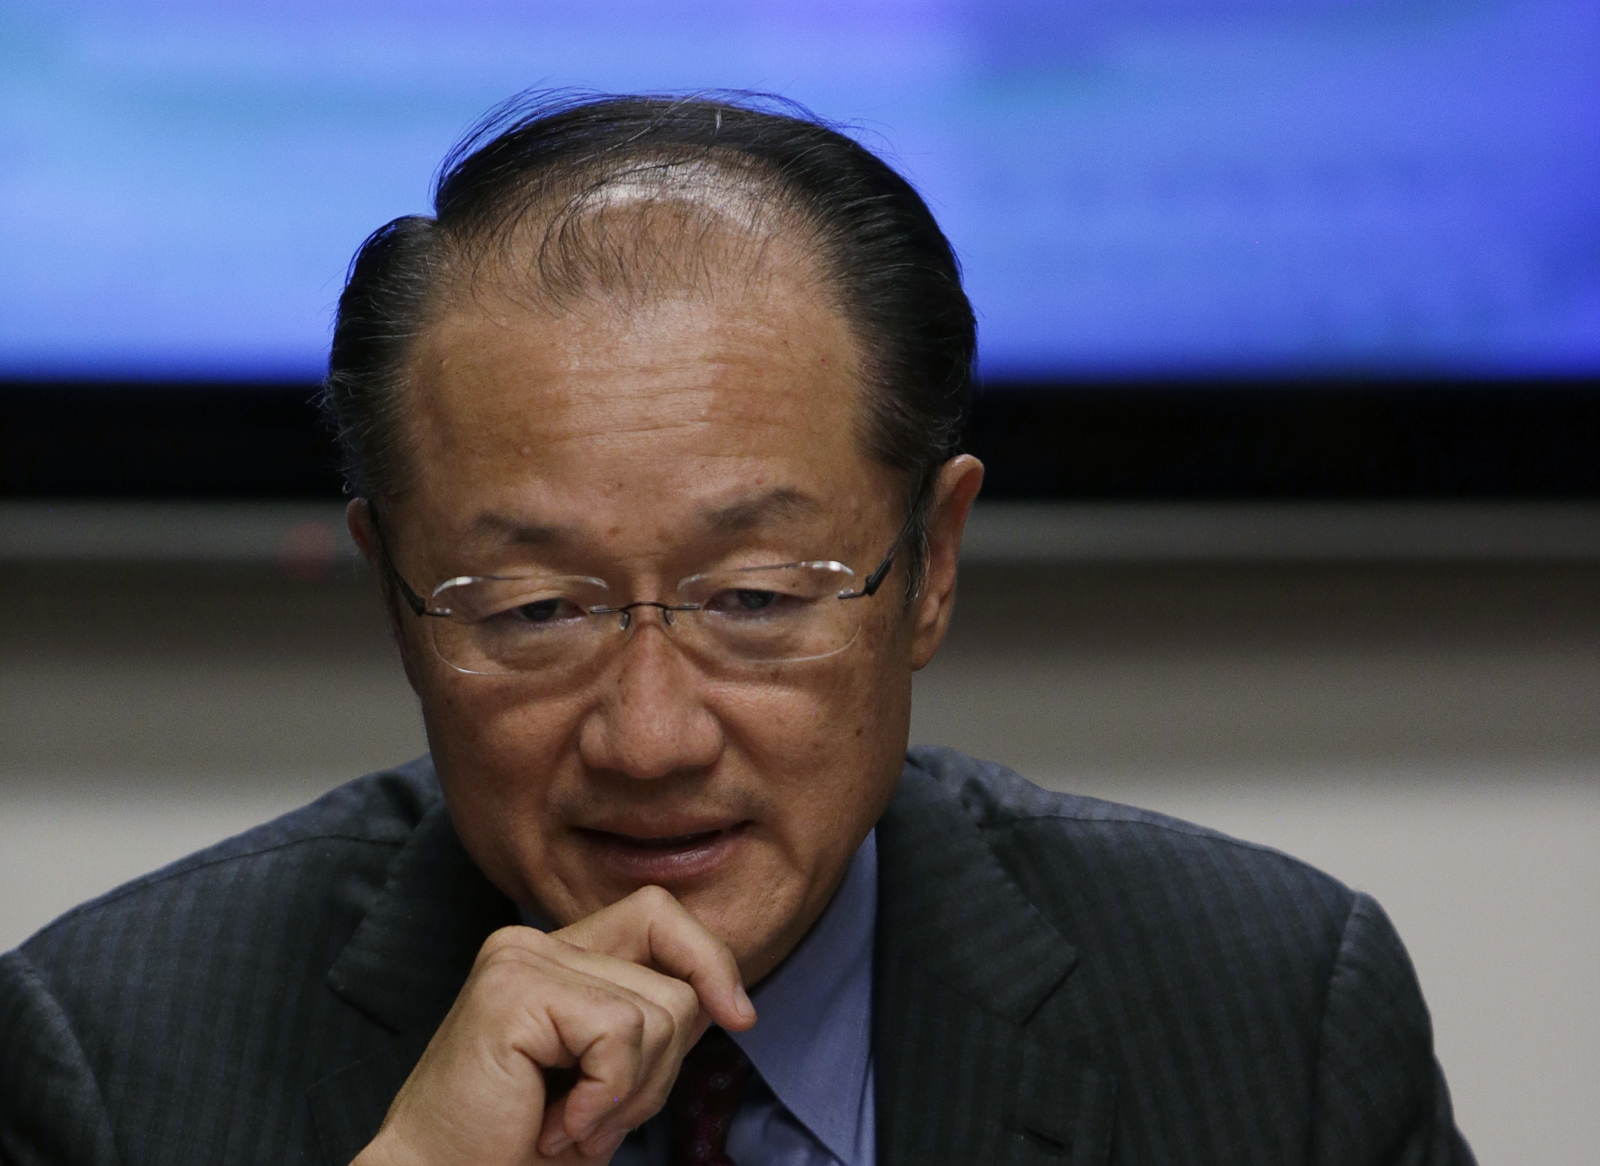 World Bank Group President Jim Yong Kim is interviewed at the Reuters Global Climate Change Summit in Washington October 16, 2014.